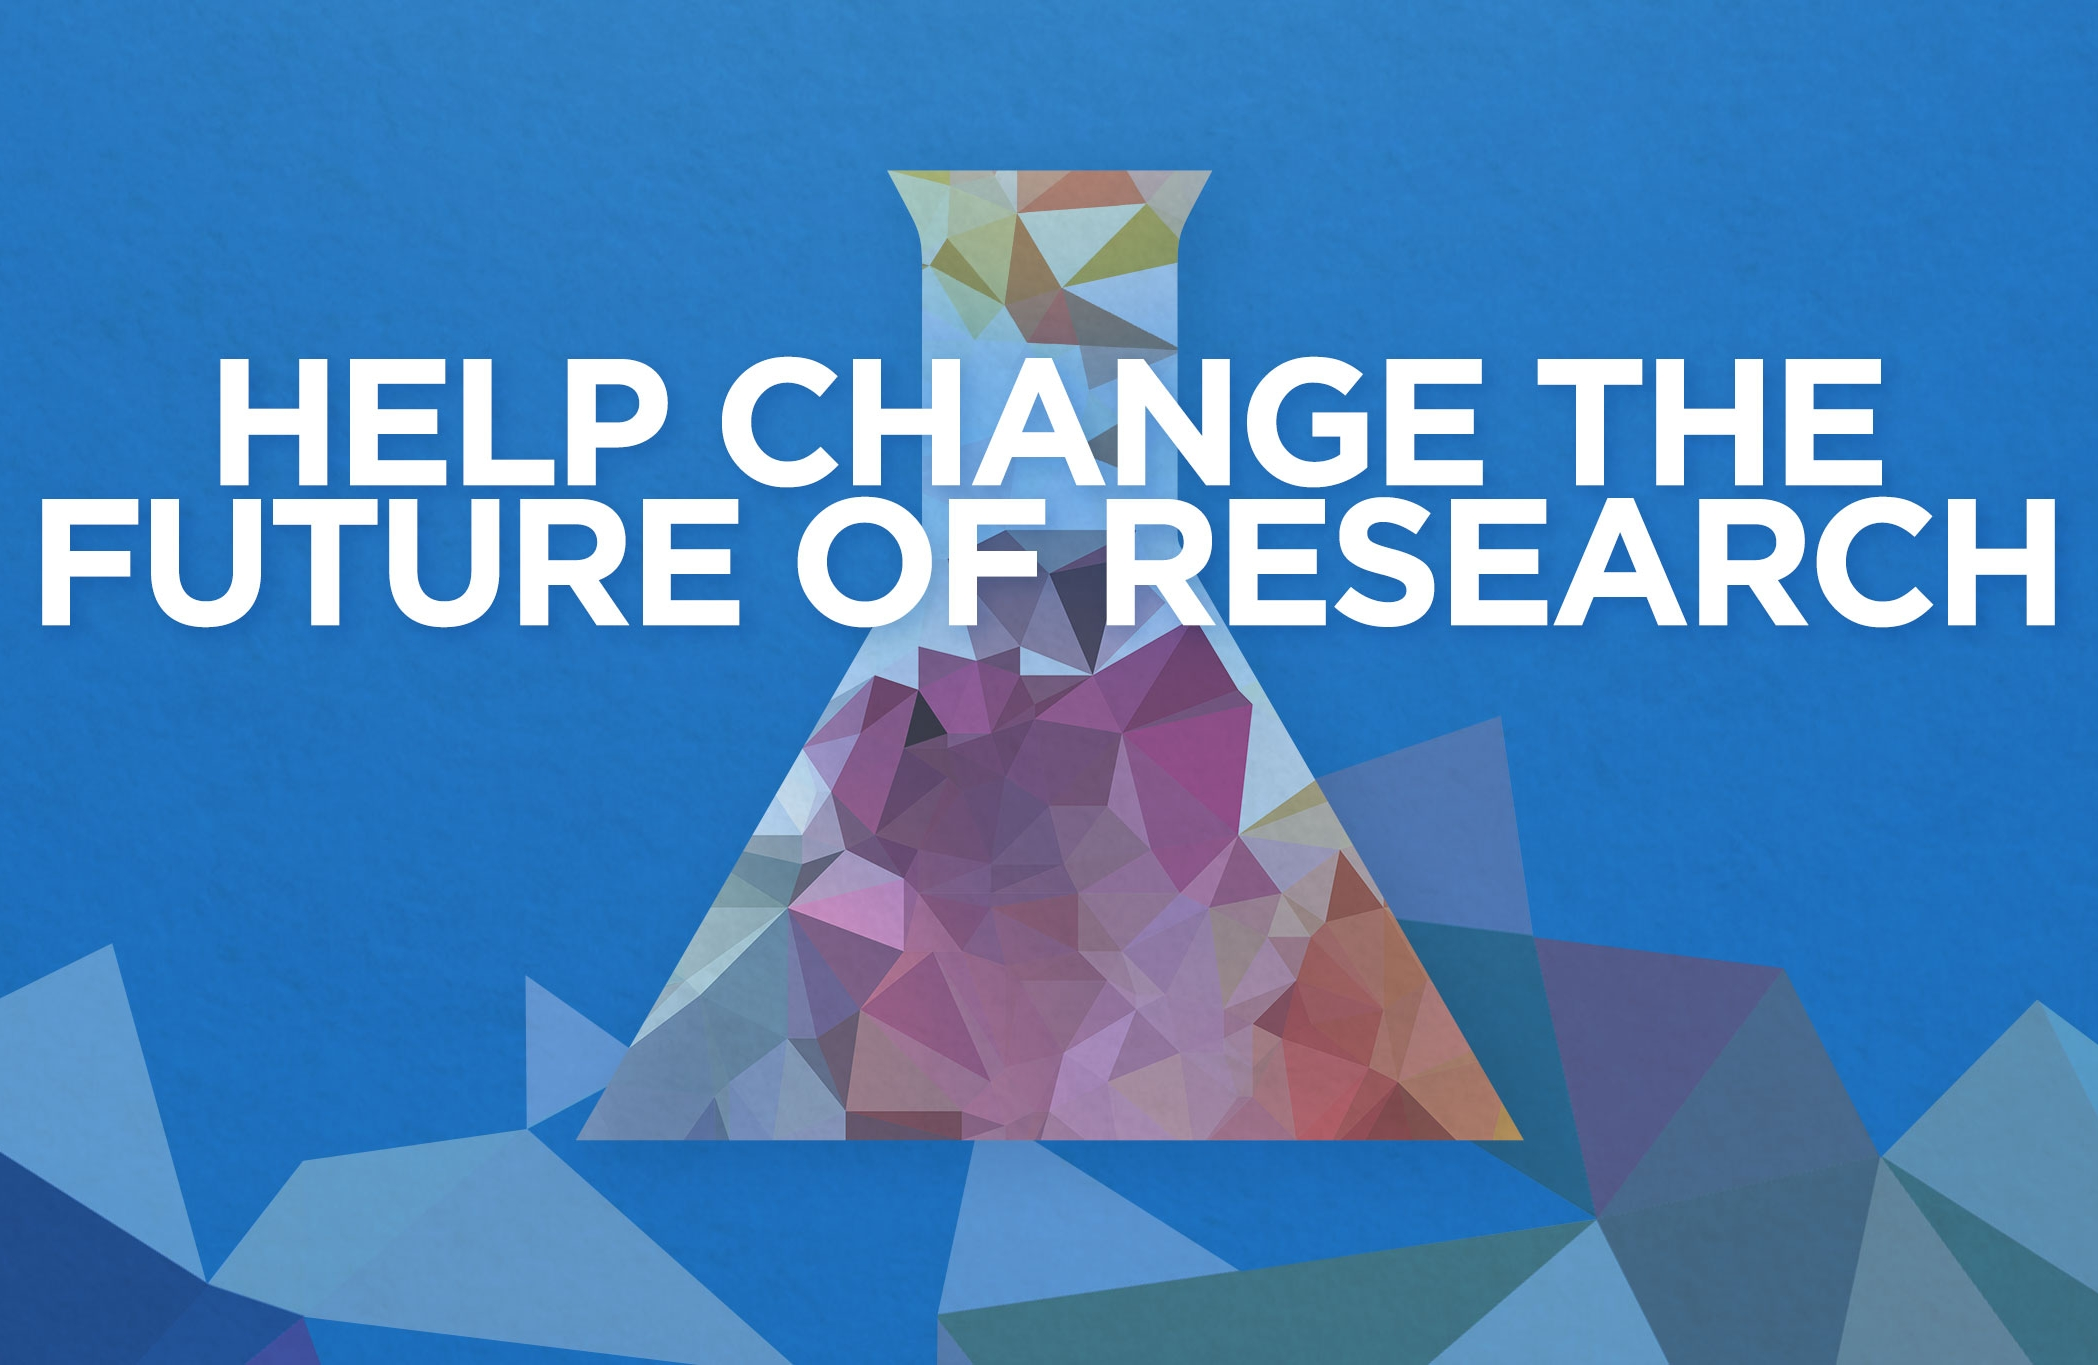 Help change the future of research.